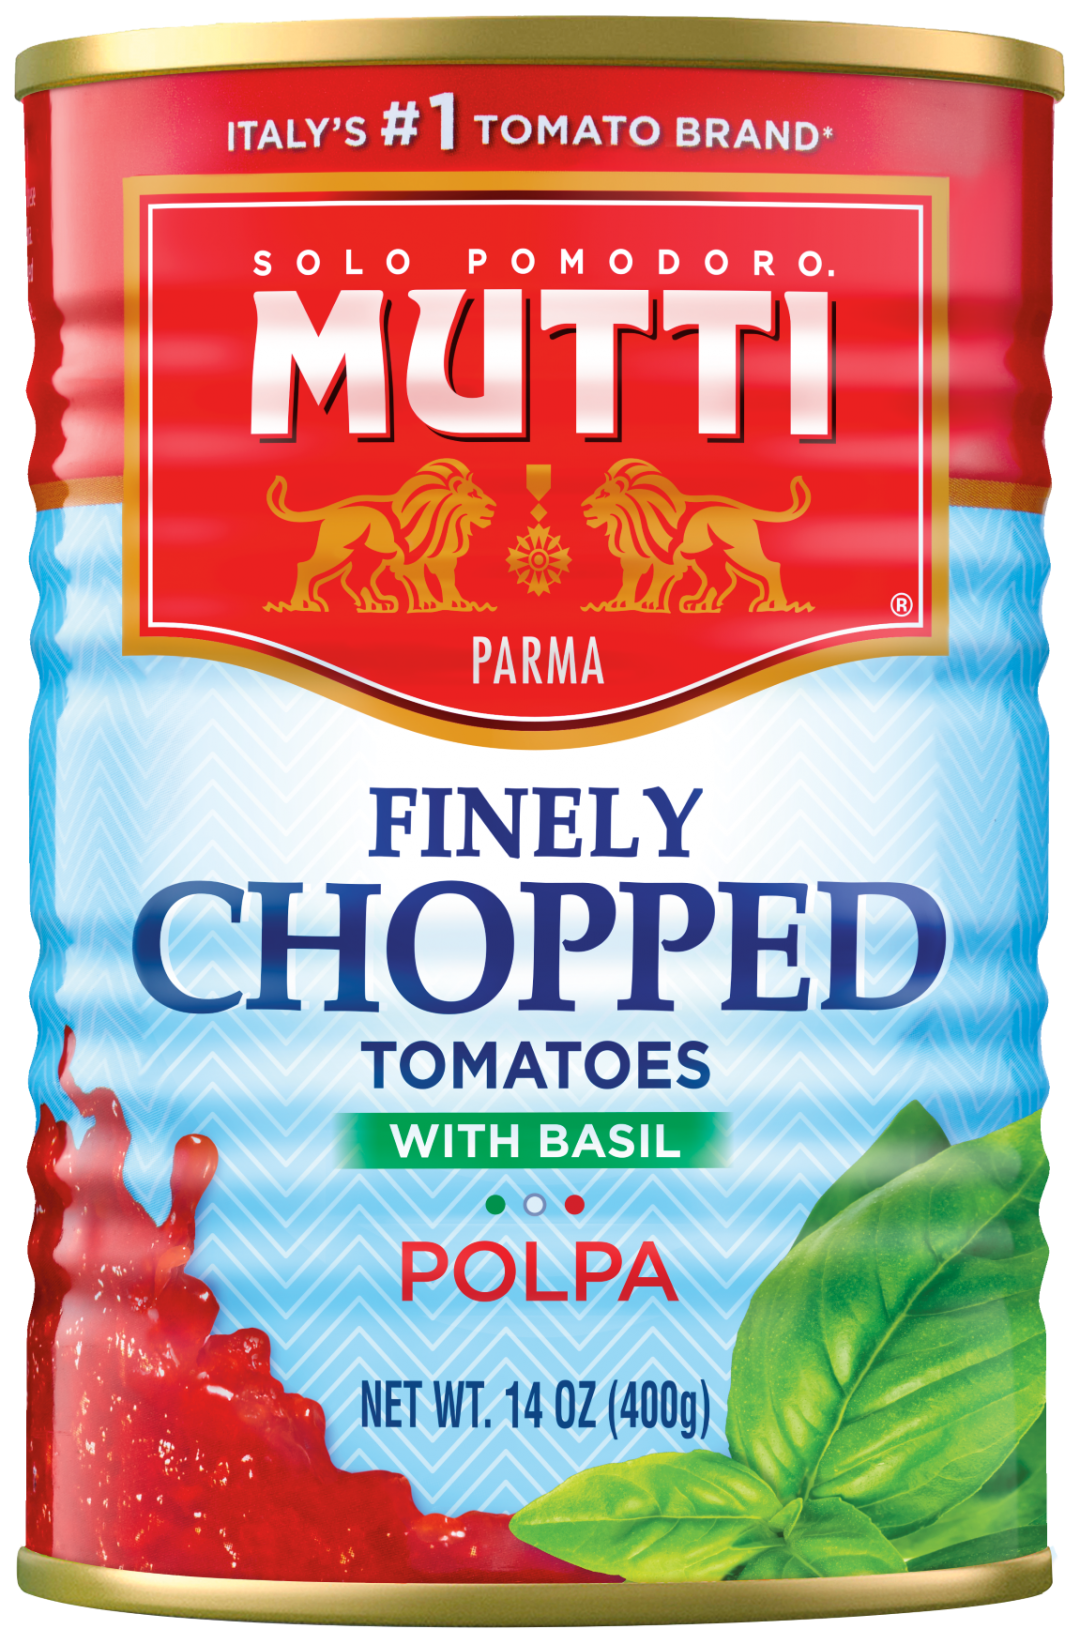 Finely Chopped Tomatoes with Basil